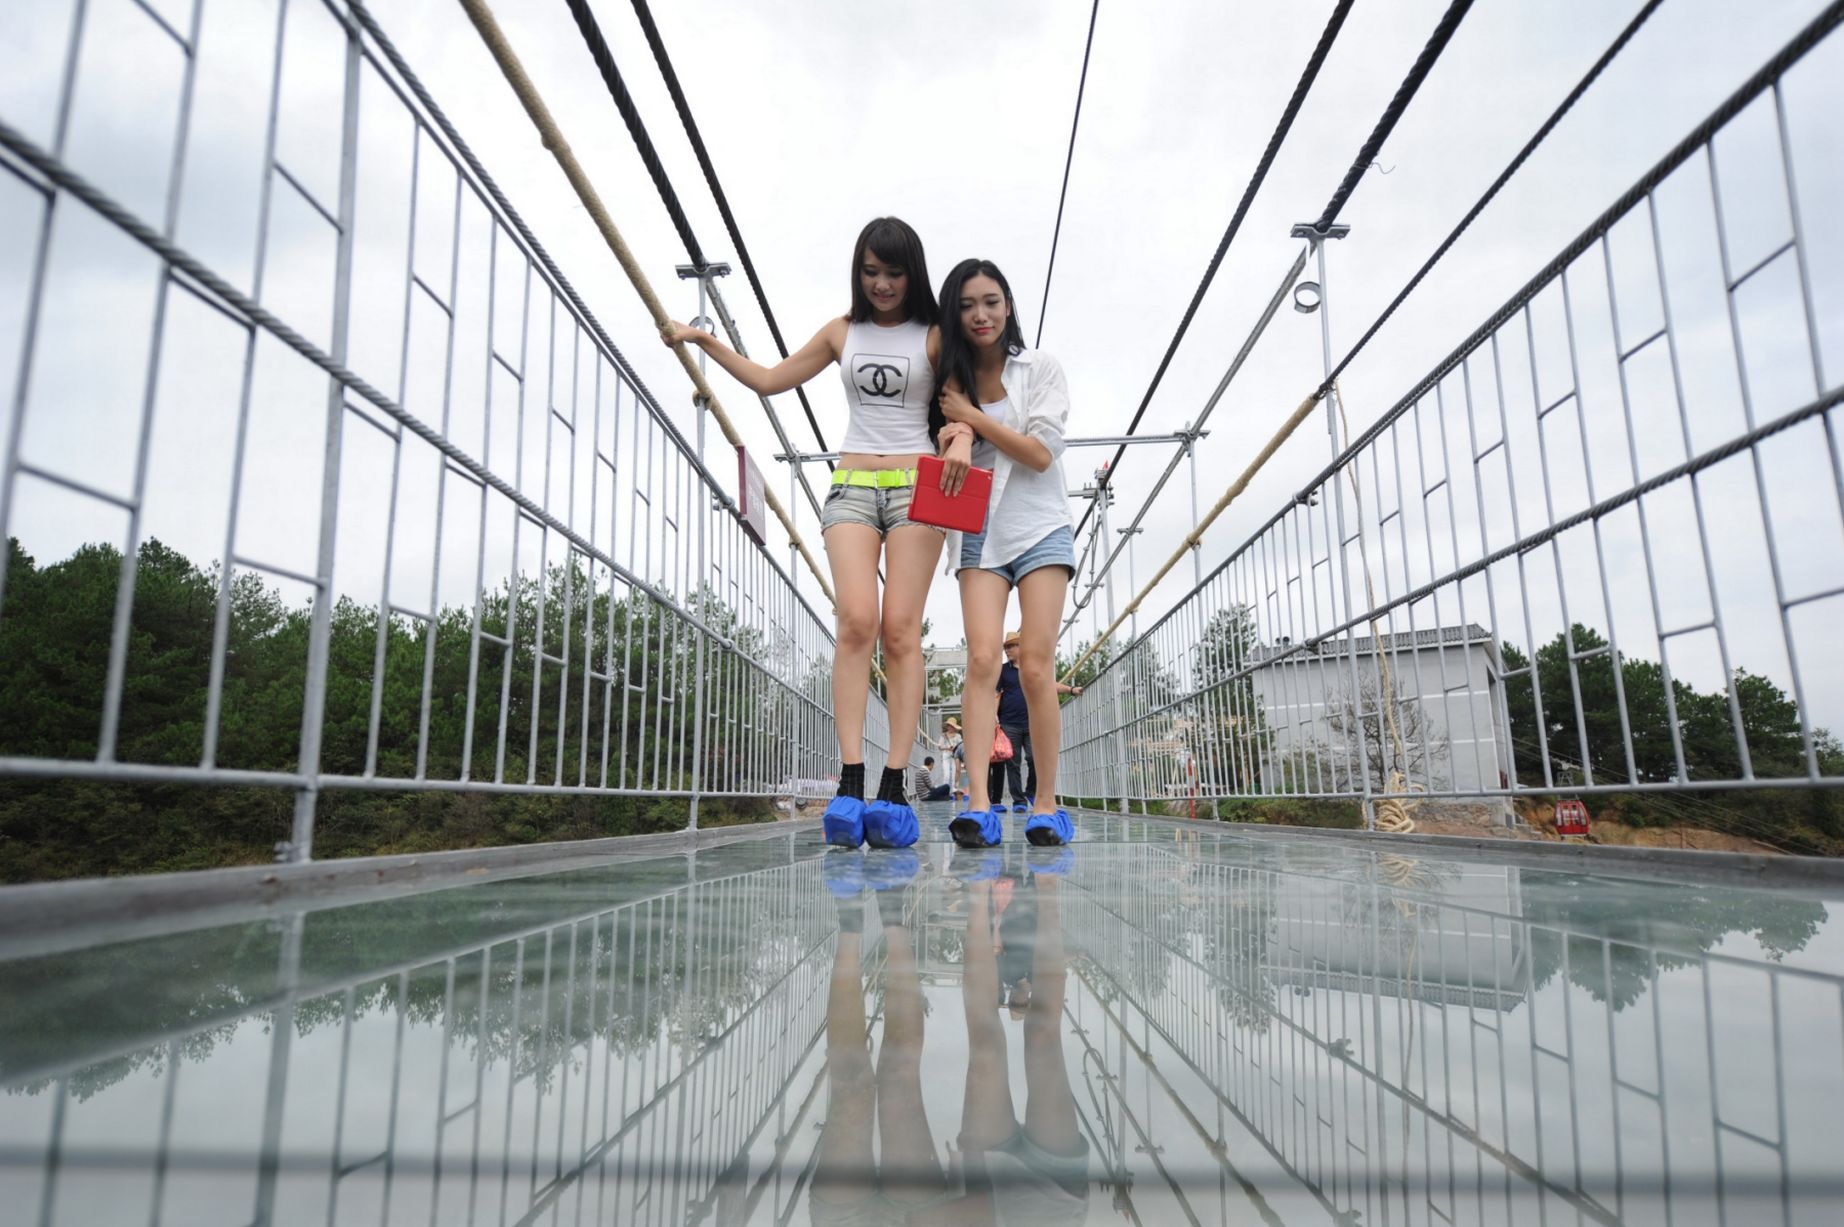 13 Pics Of A Glass Bridge That Strikes Fear In Tourists' Hearts 3